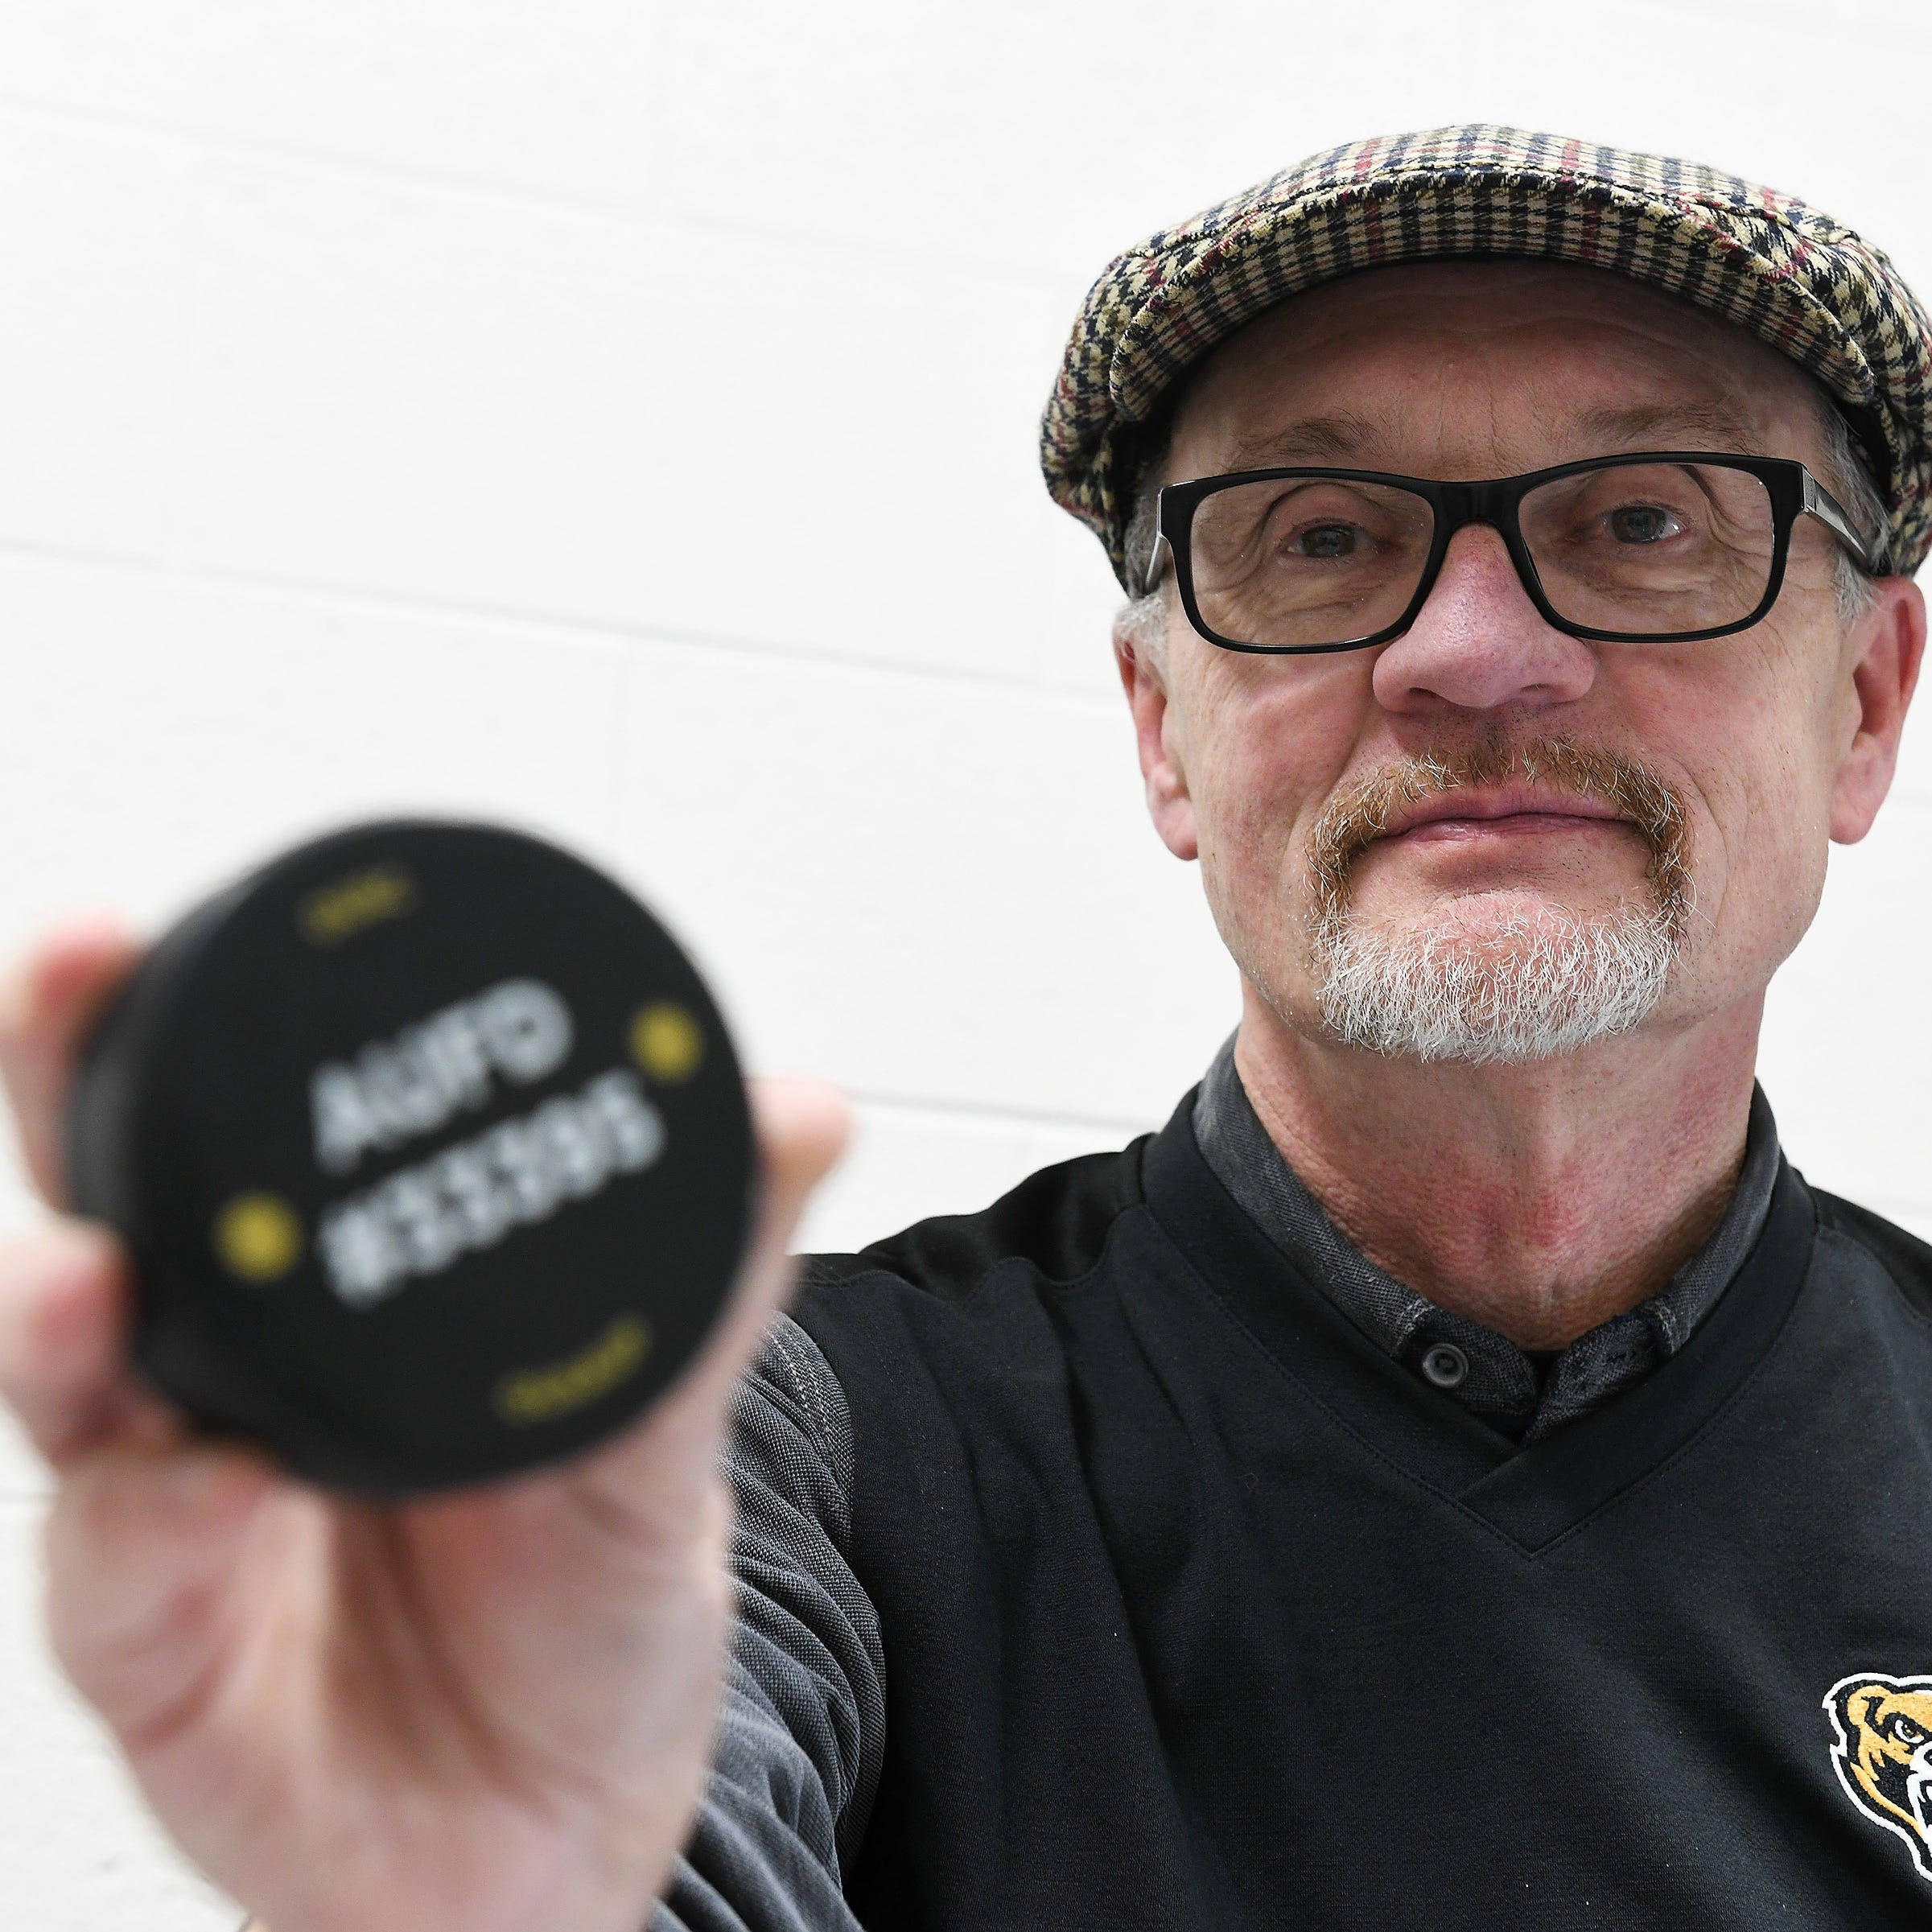 Opinion: Oakland University hockey pucks not solution to gun violence